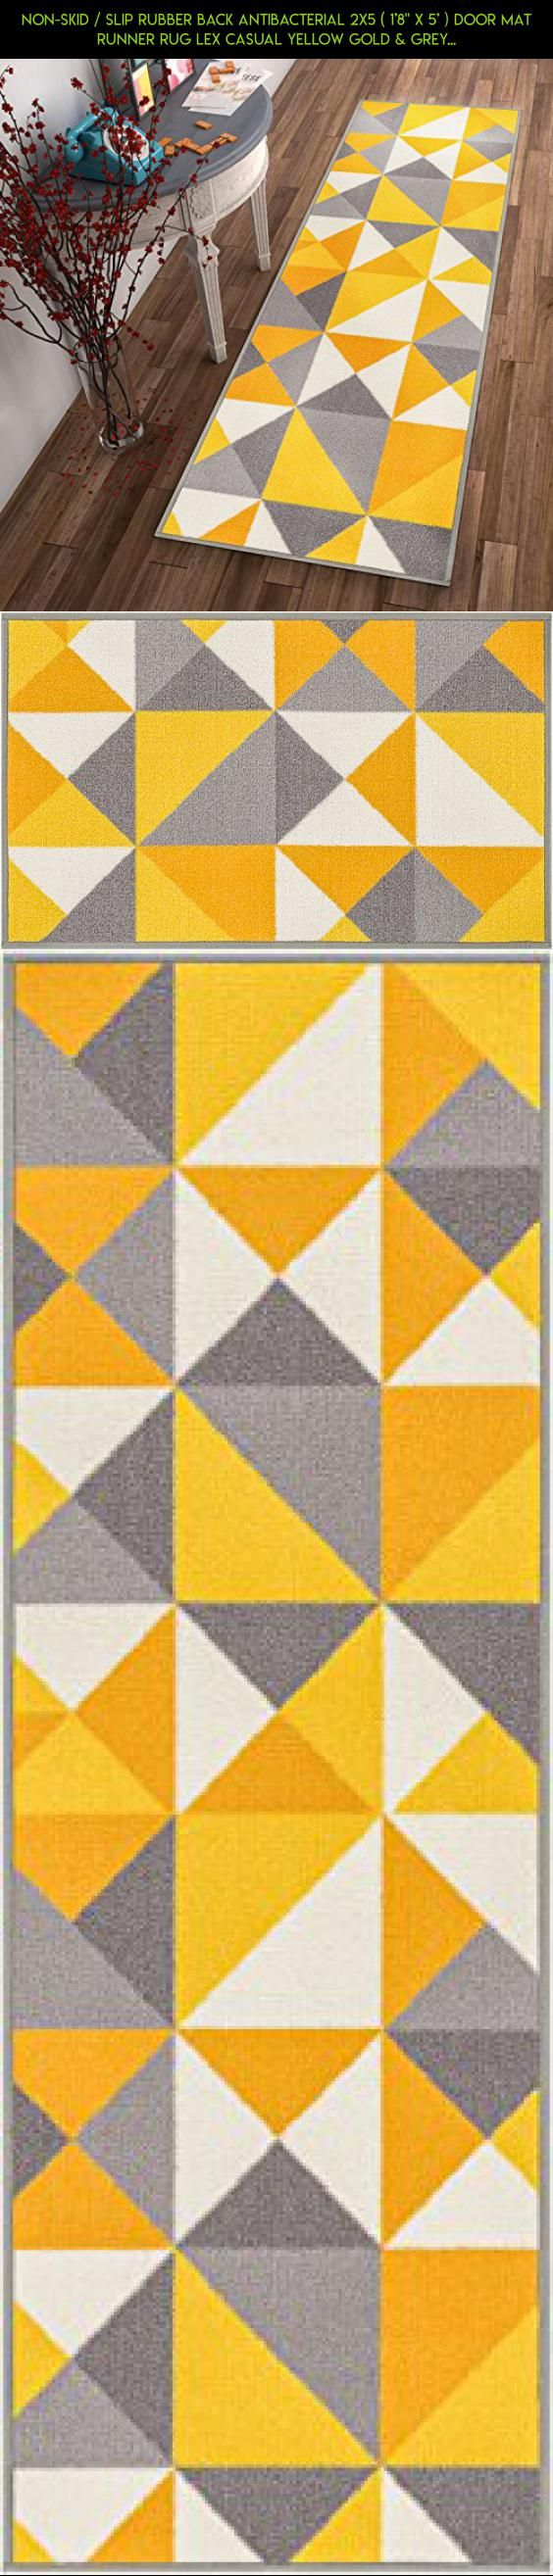 "Non-Skid / Slip Rubber Back Antibacterial 2x5 ( 1'8"" x 5' ) Door Mat Runner Rug Lex Casual Yellow Gold & Grey Geometric Modern Thin Low Pile Machine Washable Indoor Outdoor Kitchen Hallway Entry #decor #parts #products #racing #drone #camera #yellow #plans #fpv #outdoor #gadgets #shopping #tech #technology #kit"